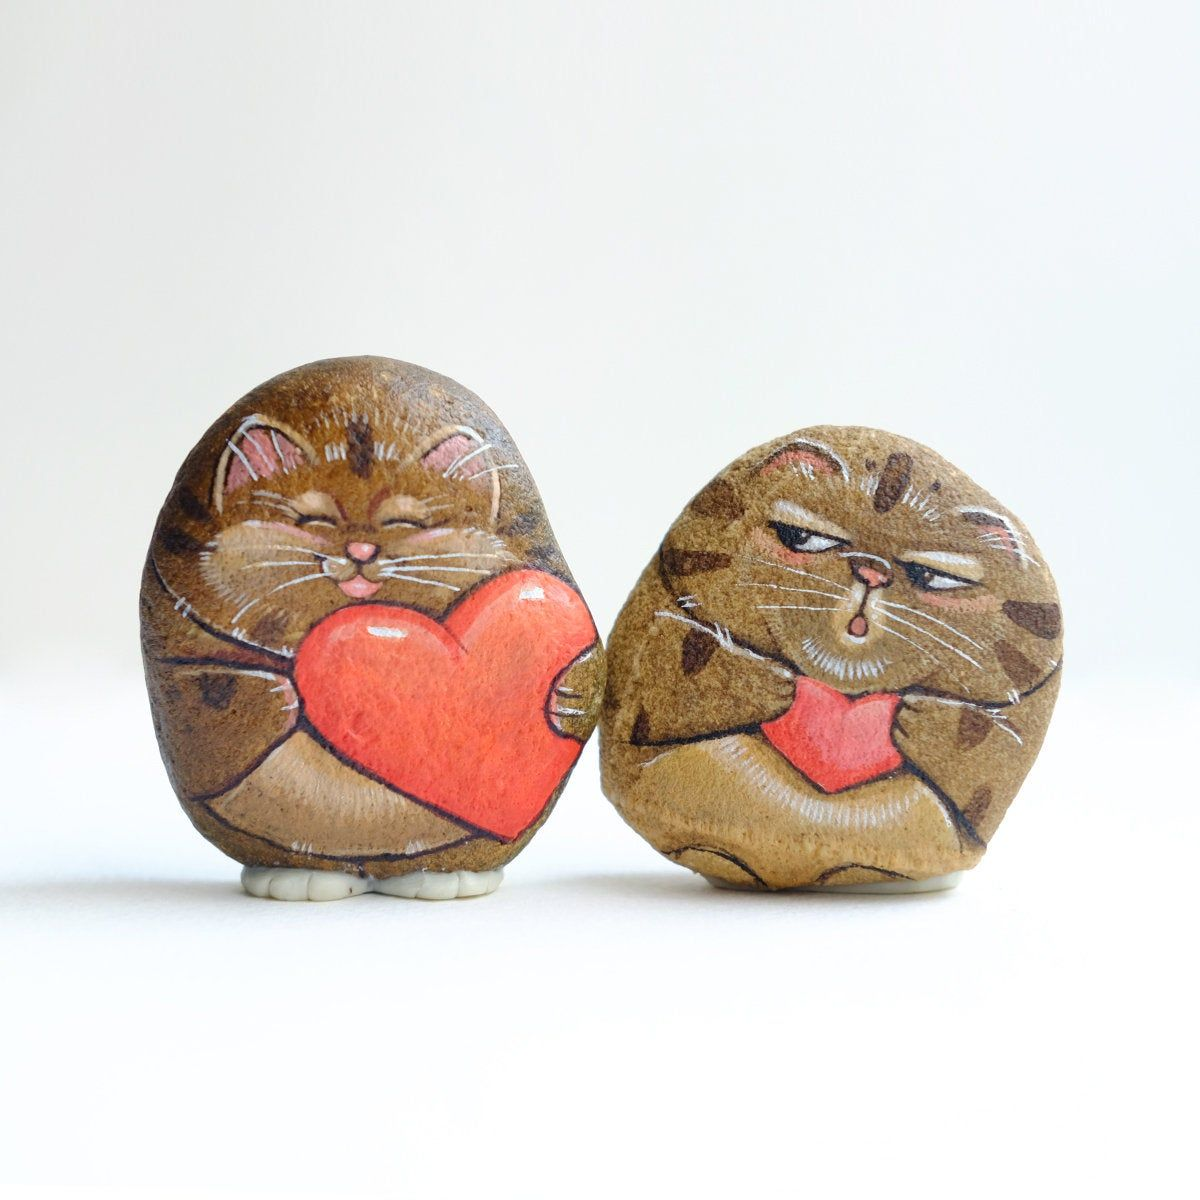 Cat Couple Stone Painting Stone Art Paint By Acrylic Colour Unique Original Art In 2020 Clay Art Projects Stone Art Stone Painting